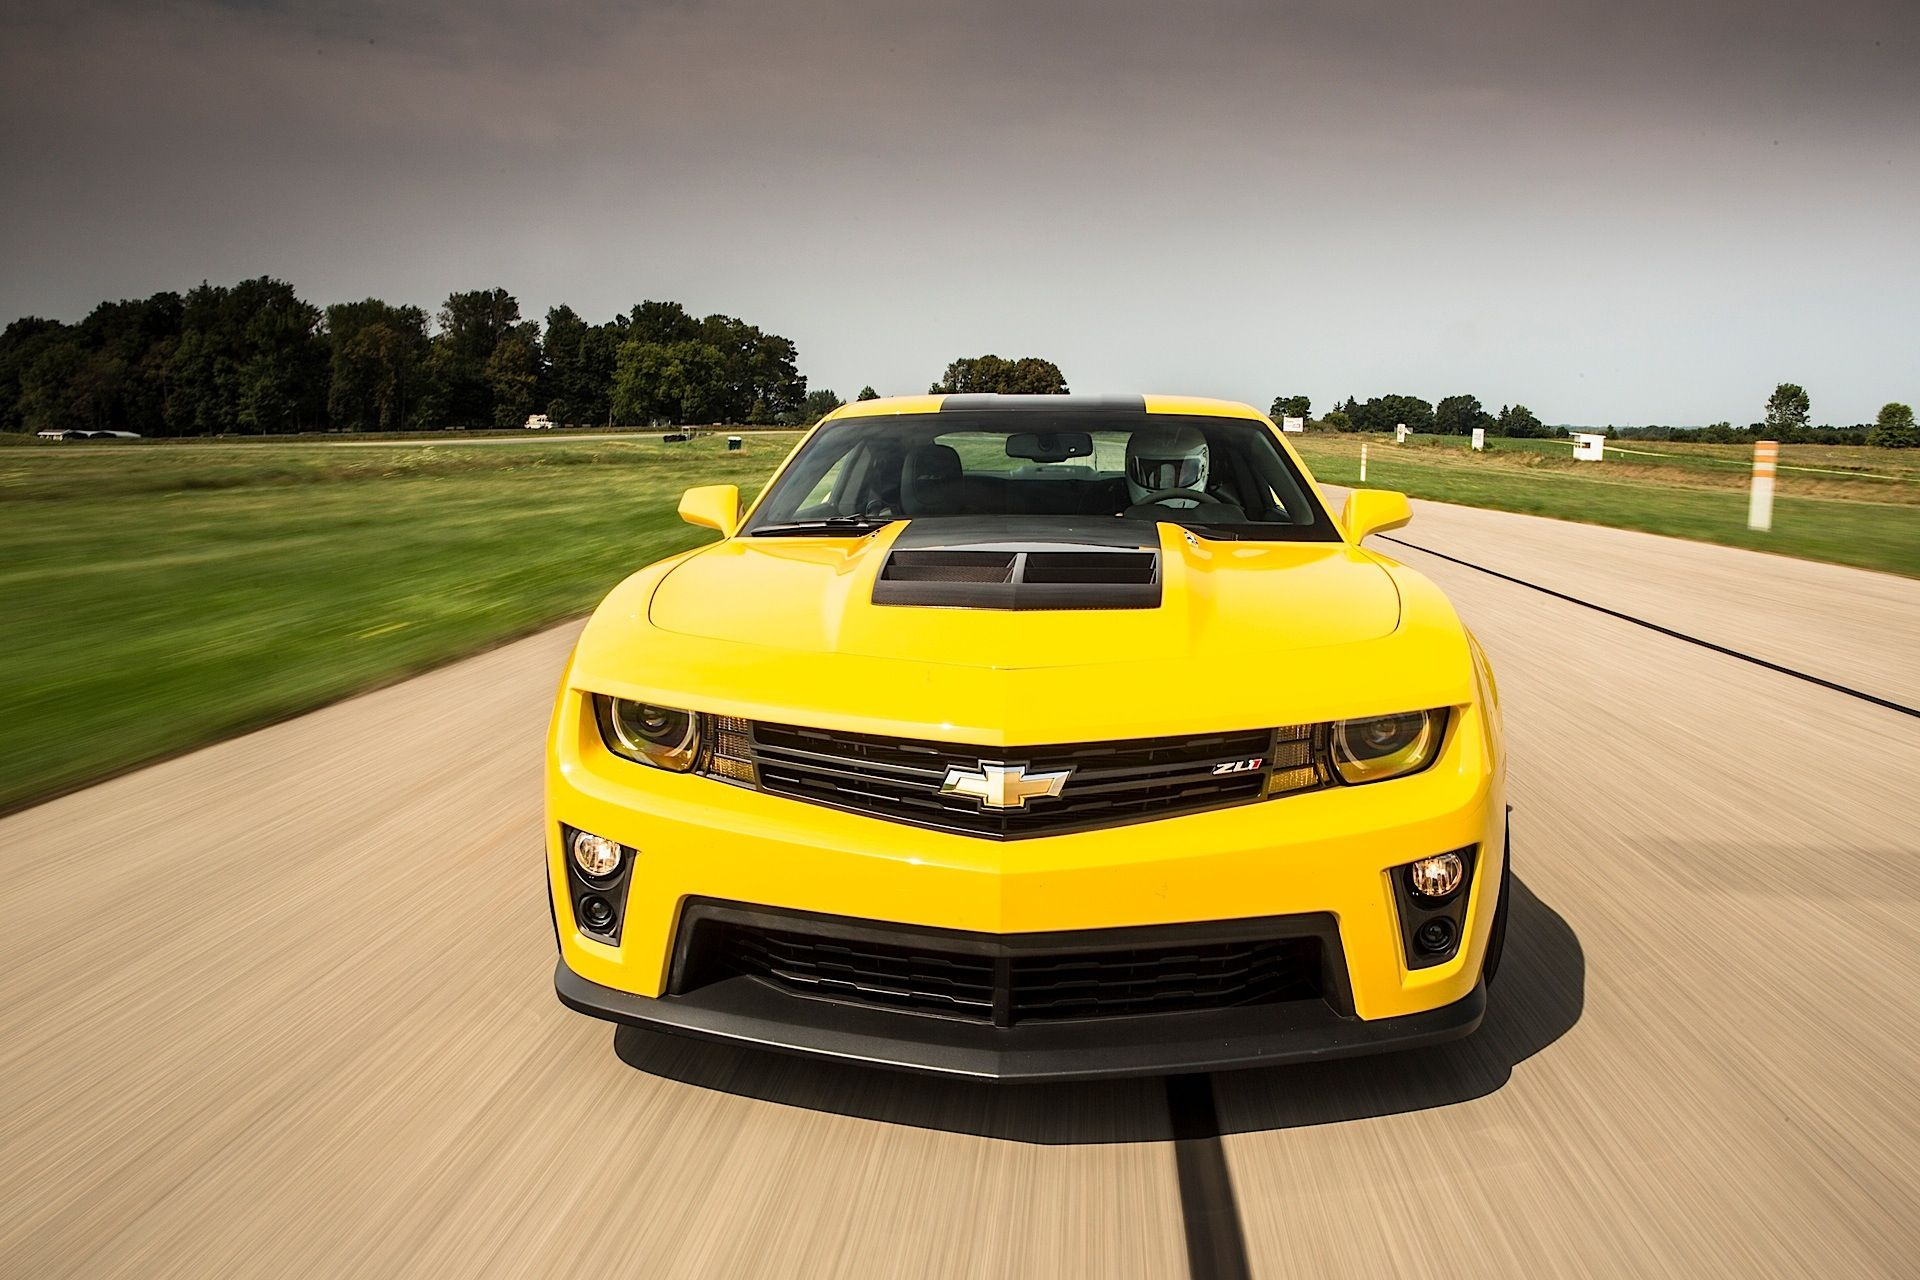 Chevrolet Camaro Zl1 1le Painted In Bright Yellow Photo Taken By Mojave Rattler On Instagram Owned By